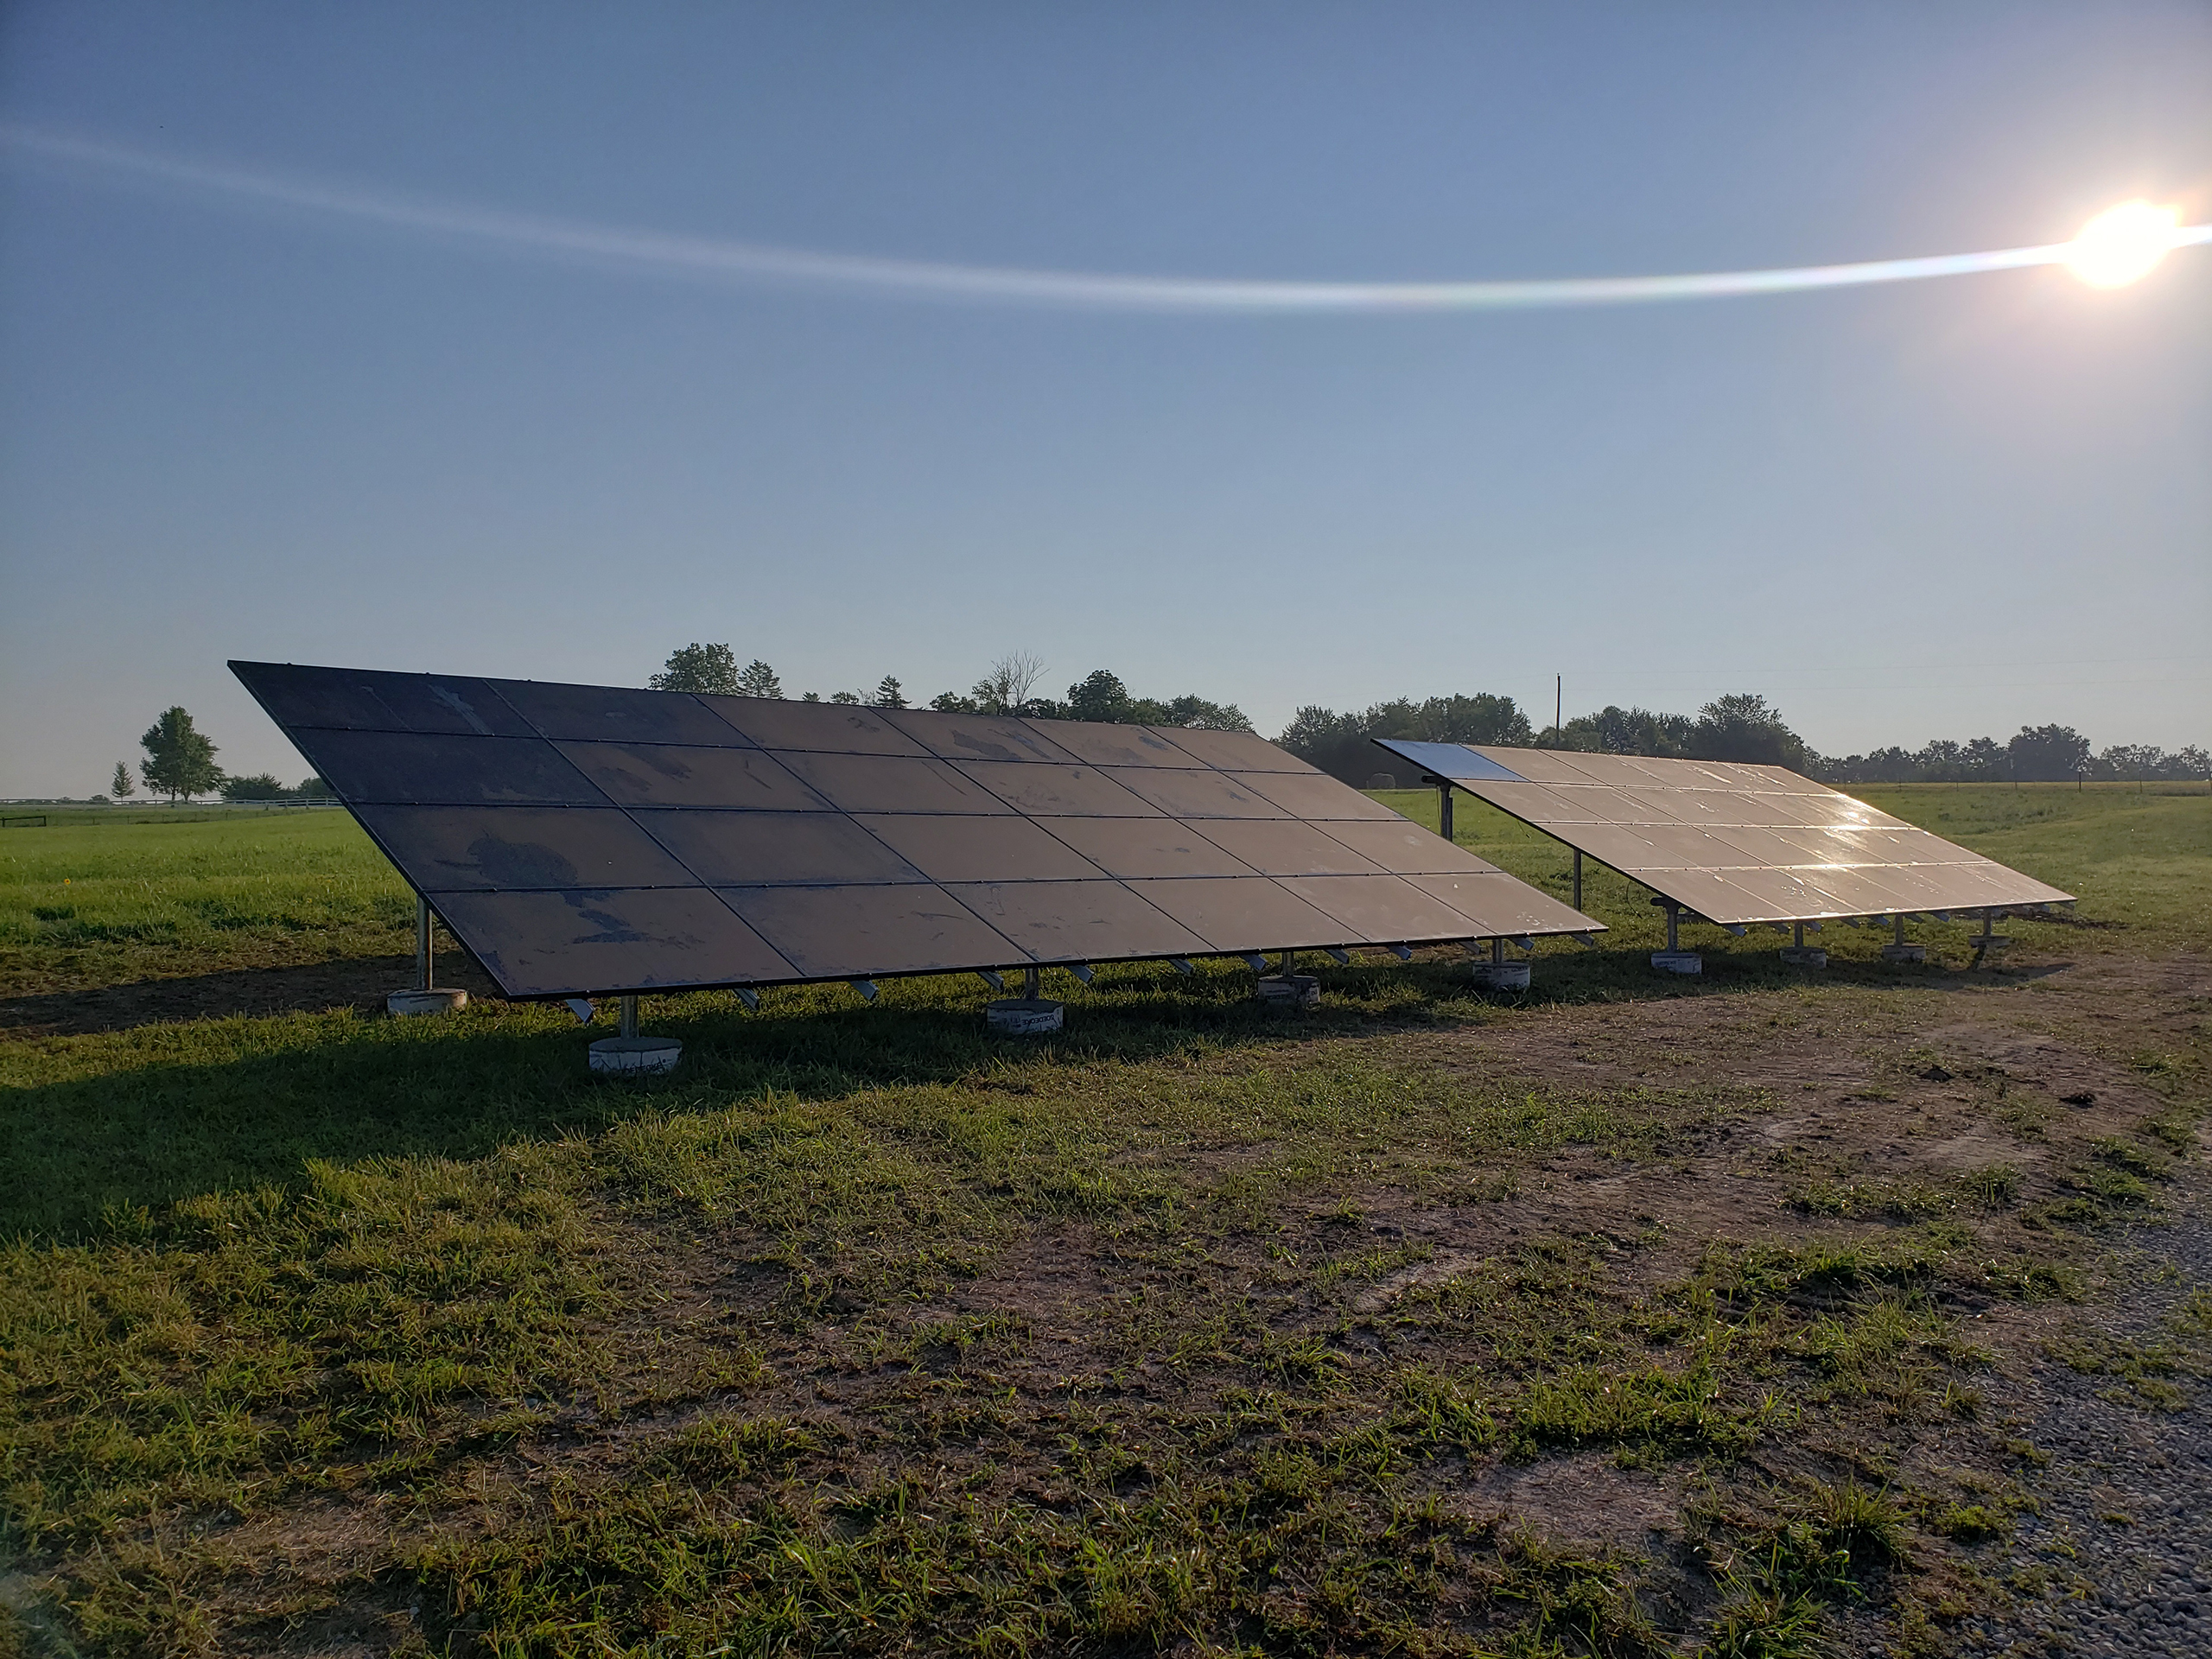 Two large groups of solar panels are seen in a mowed field of grass. The sun is shining in a clear blue sky. A row of trees are seen in the distance behind the solar panels that are mounted at ground level.